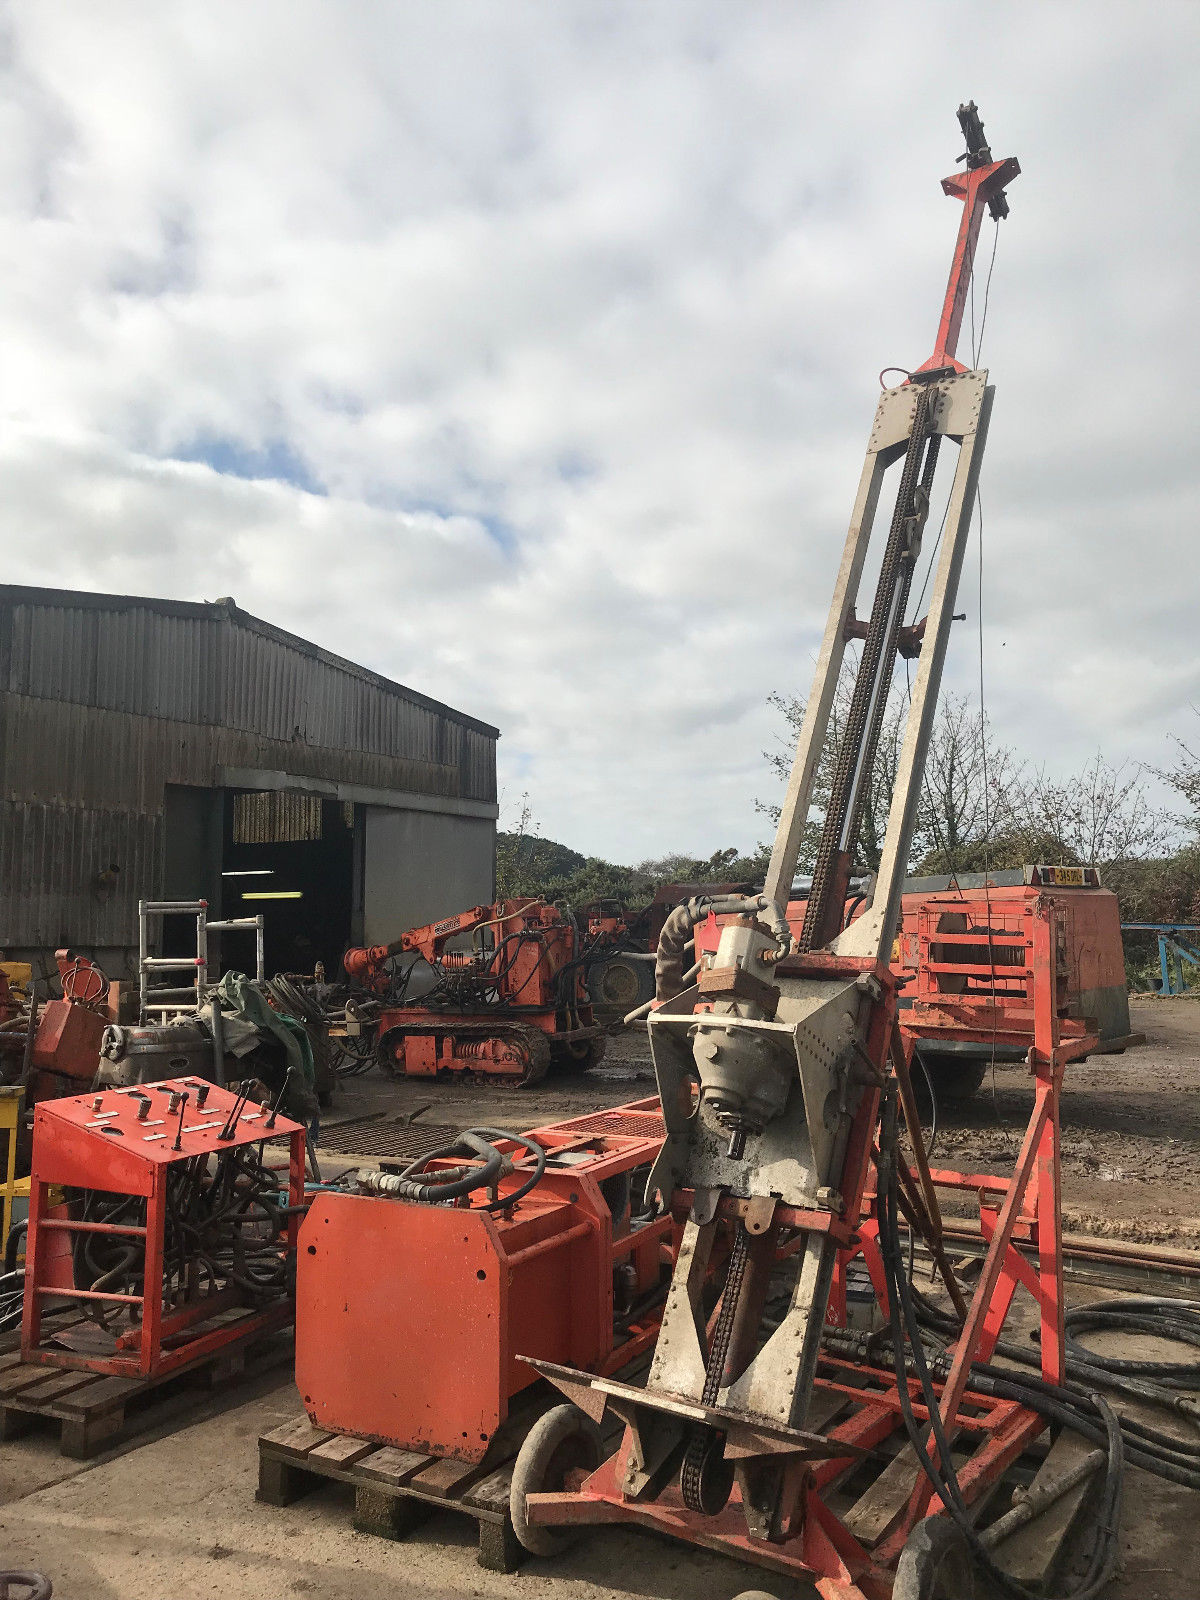 Marlow Mole Portable Diamond Drilling Rig Image